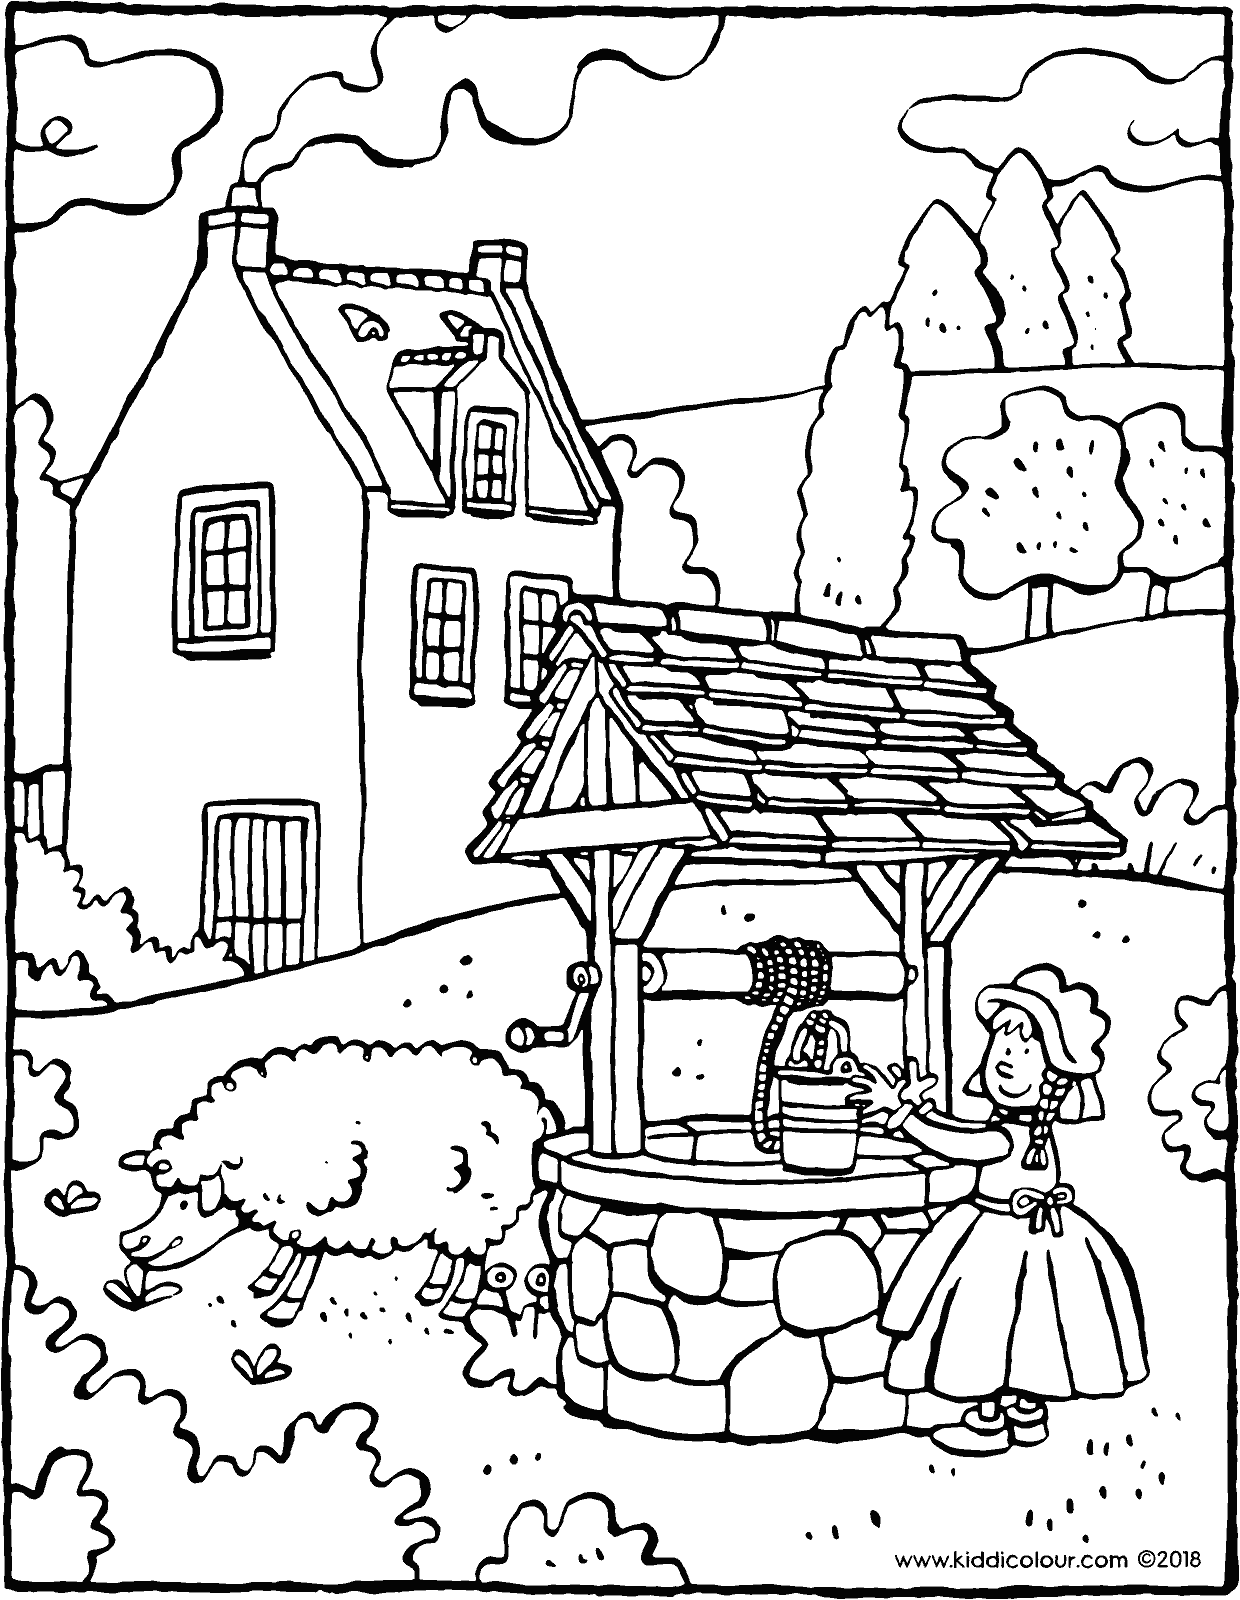 fetching water from the well colouring page drawing picture 01V